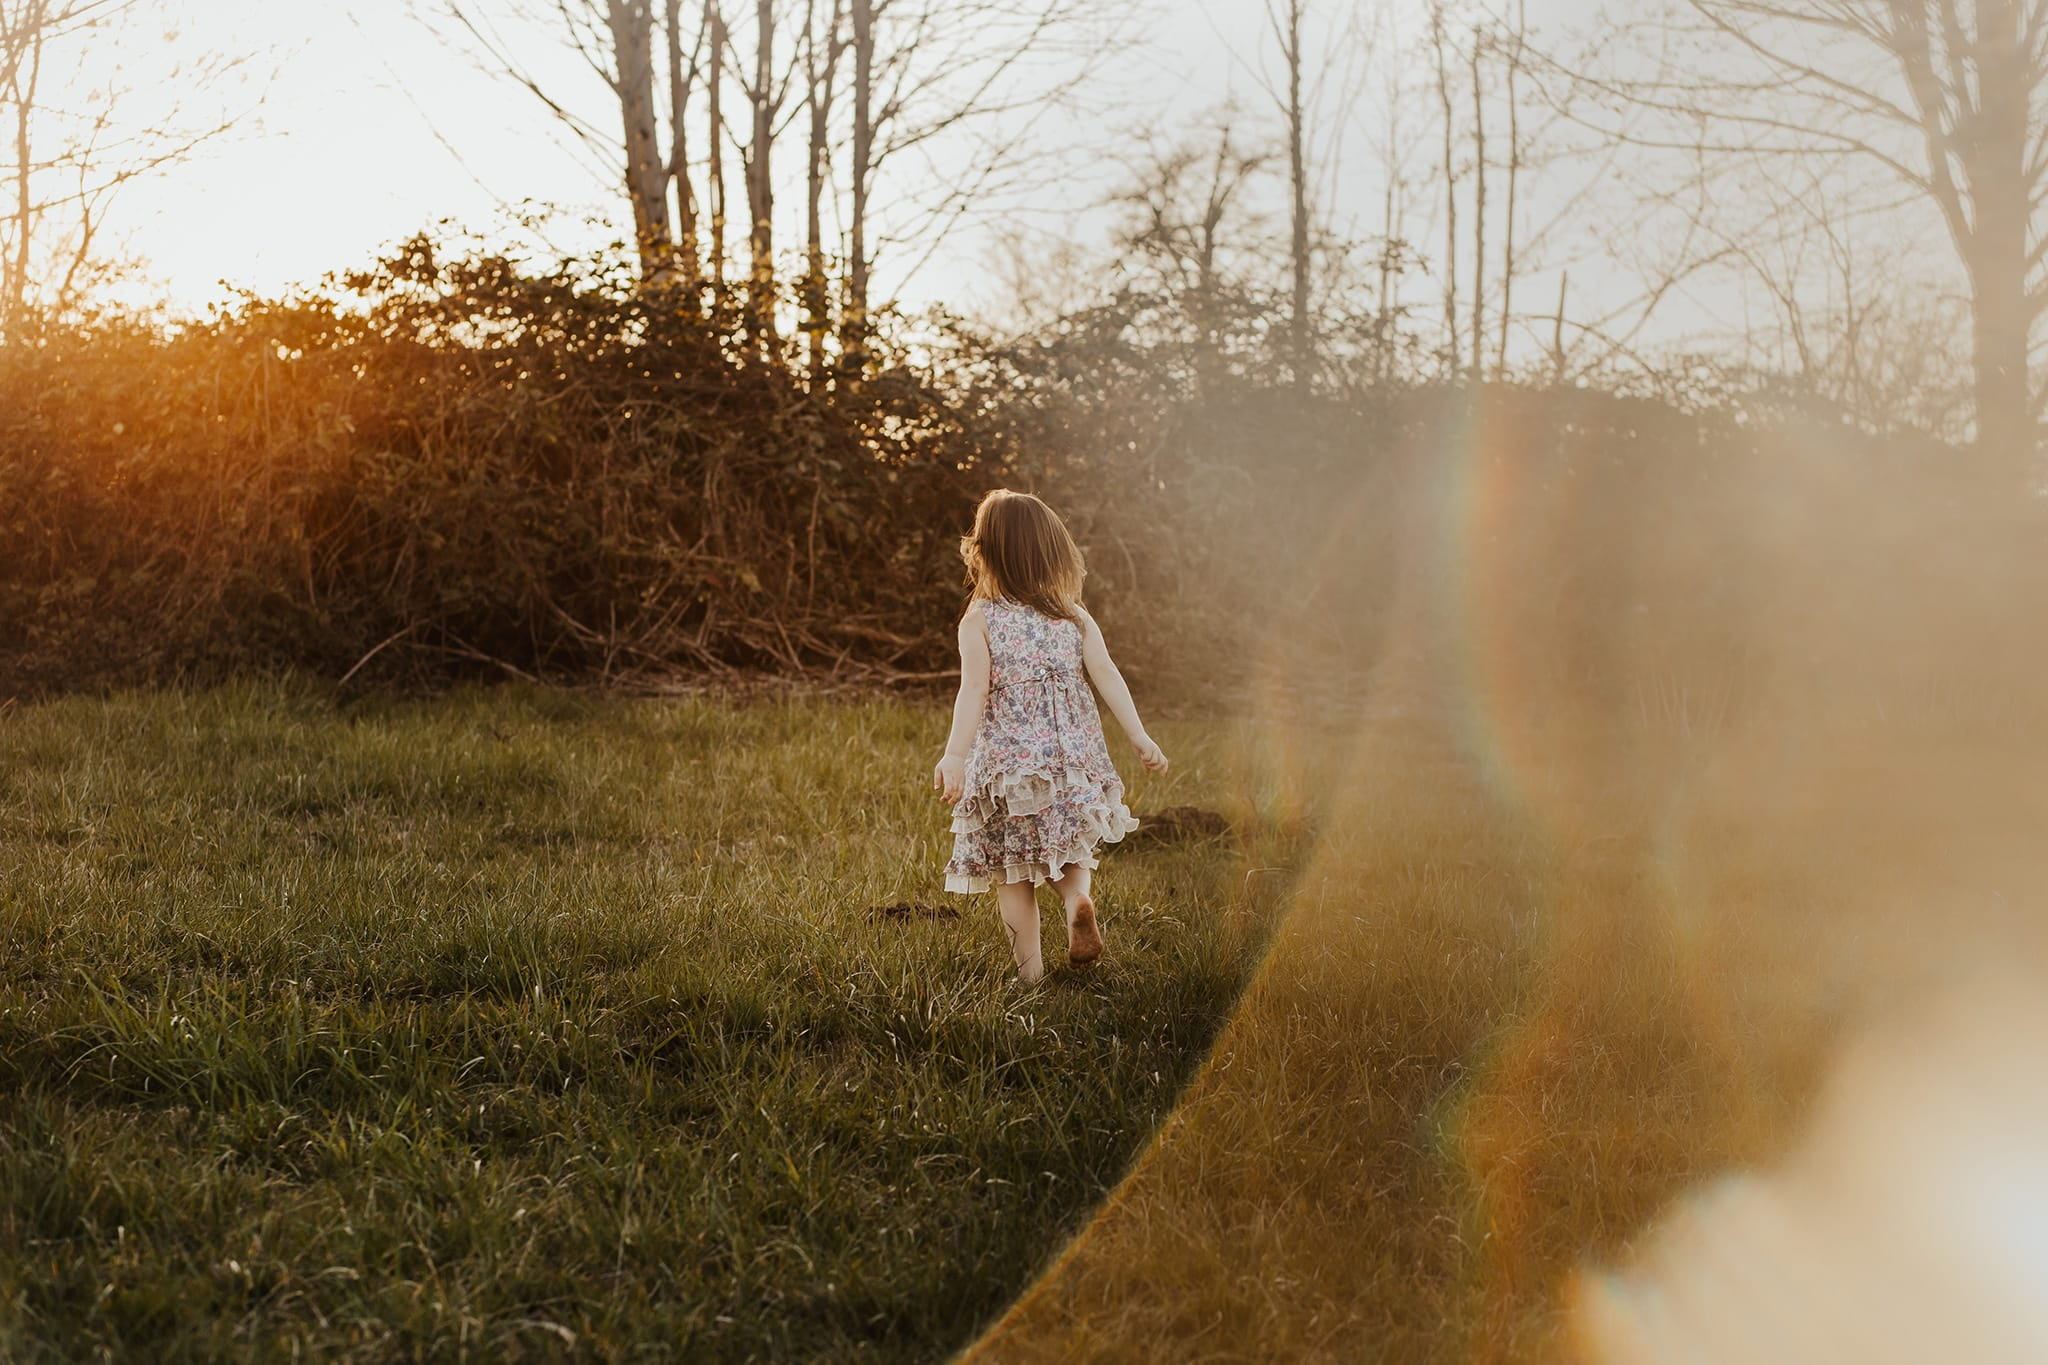 little girl in floral dress running from camera - circular prism tutorial